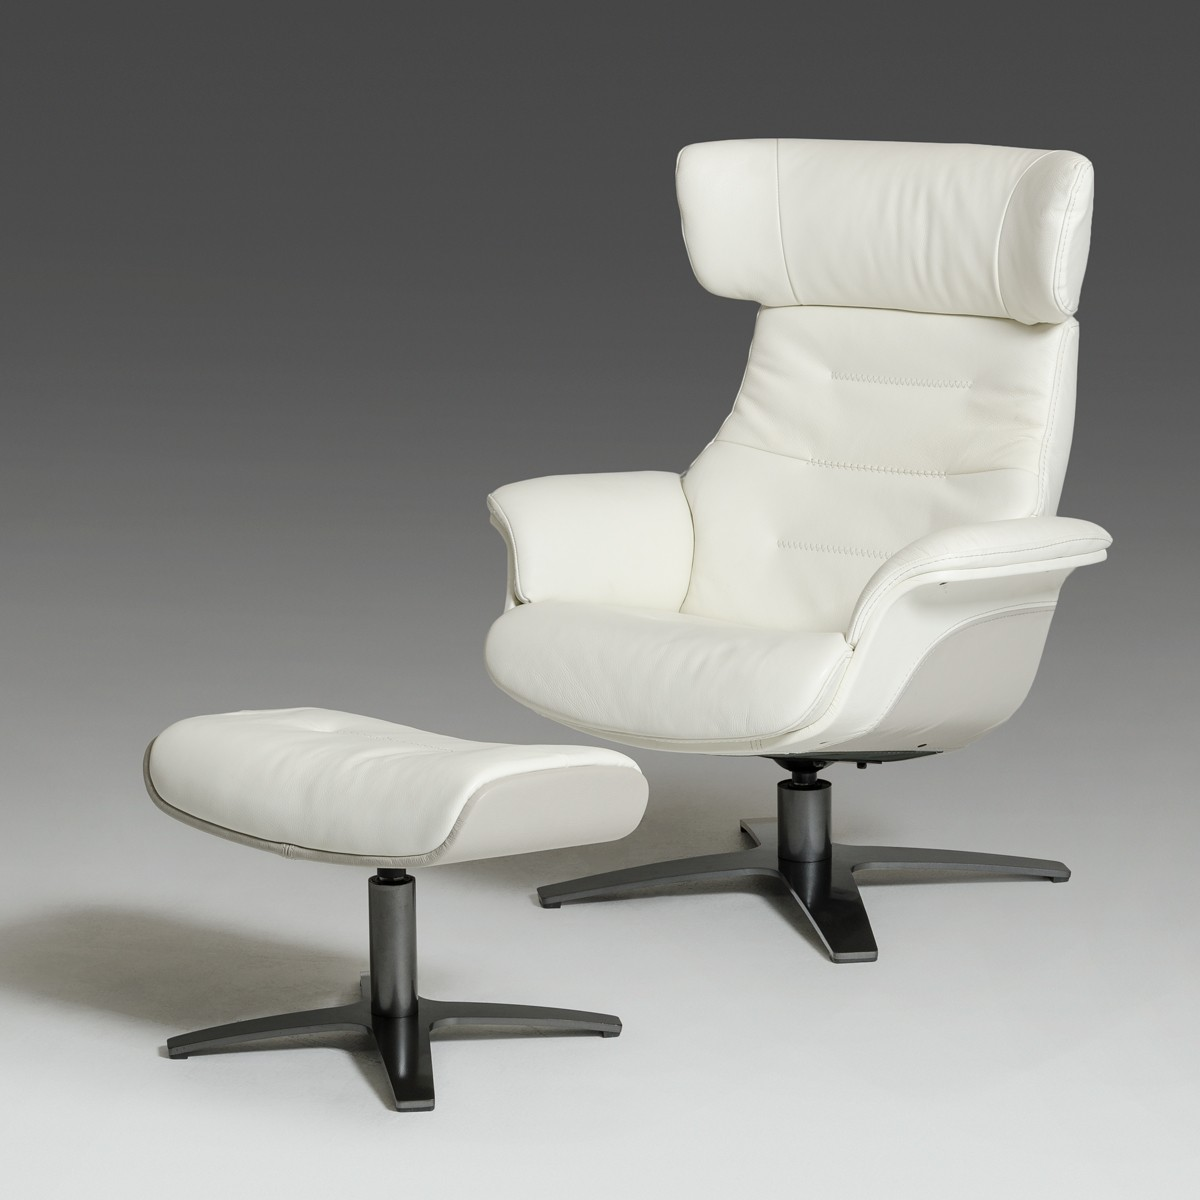 Real Leather Recliner Chairs Modern White And Grey Genuine Leather Reclining Chair And